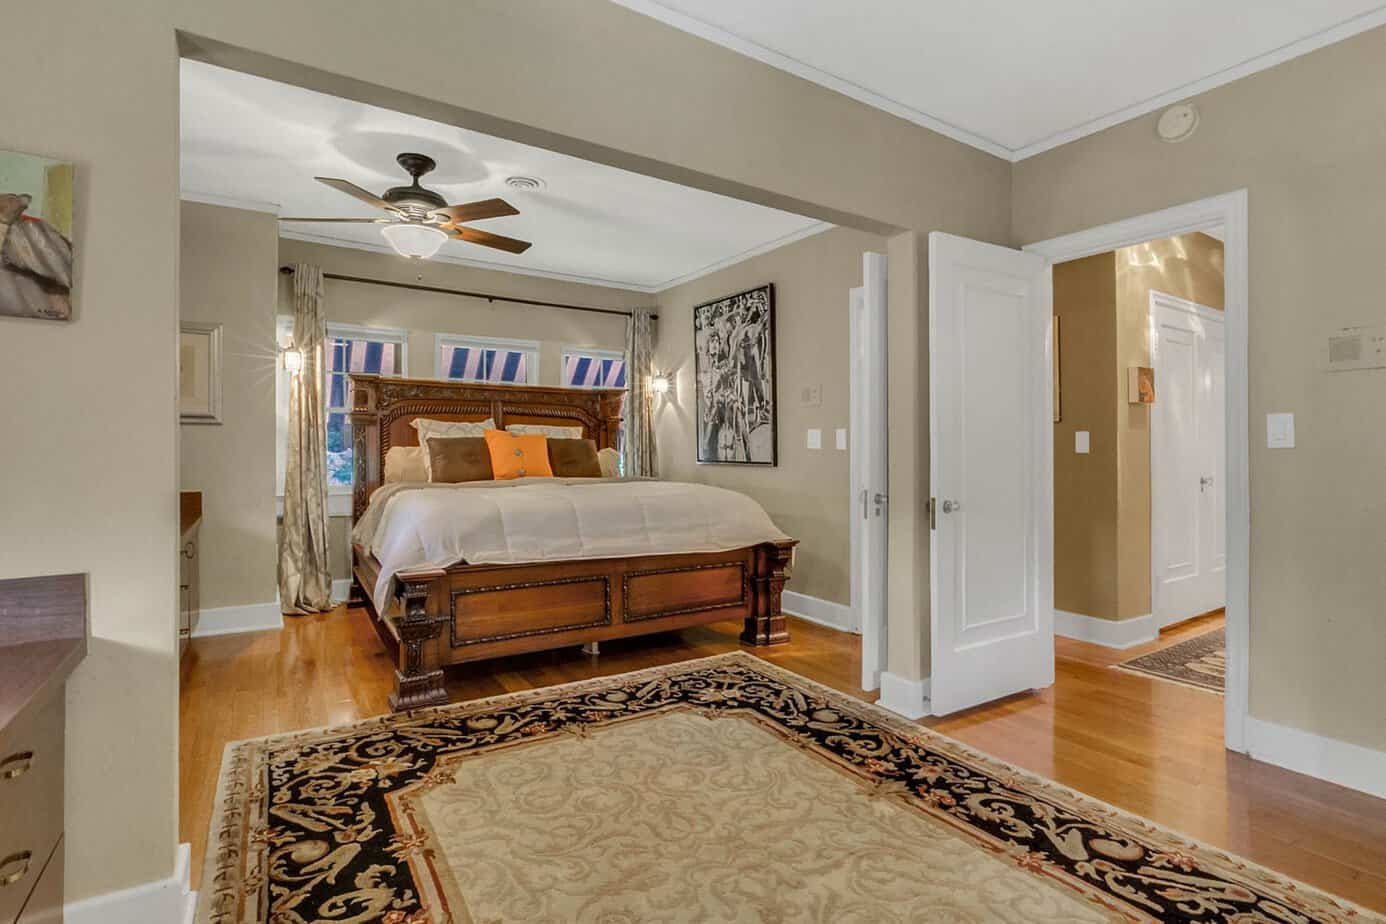 Picture of one of the dual master bedrooms with wood floors, Bed, ceiling fan, and decorative rug for the historic south tampa estate home for sale at 4024 W Bay To Bay Blvd. Tampa FL 33629